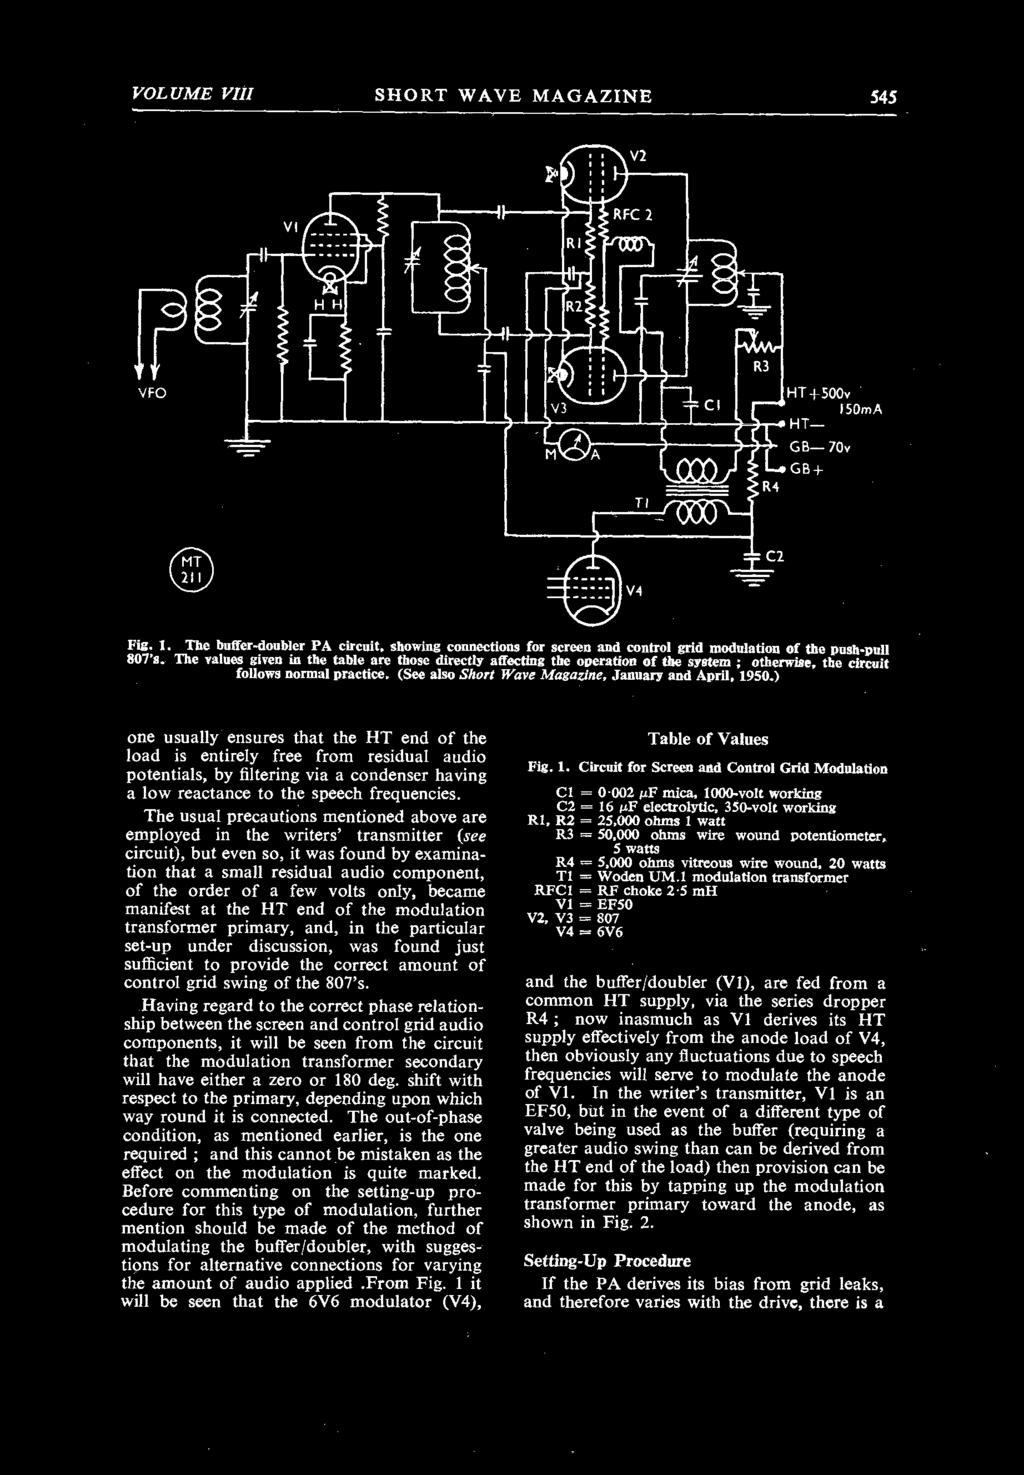 Exclusively For The Radio Experimenter Transmitting Amateur Vol Ignition Circuit Diagram 1935 Chevrolet Master De Luxe Standard And Truck Models One Usually Ensures That Ht End Of Load Is Entirely Free From Residual